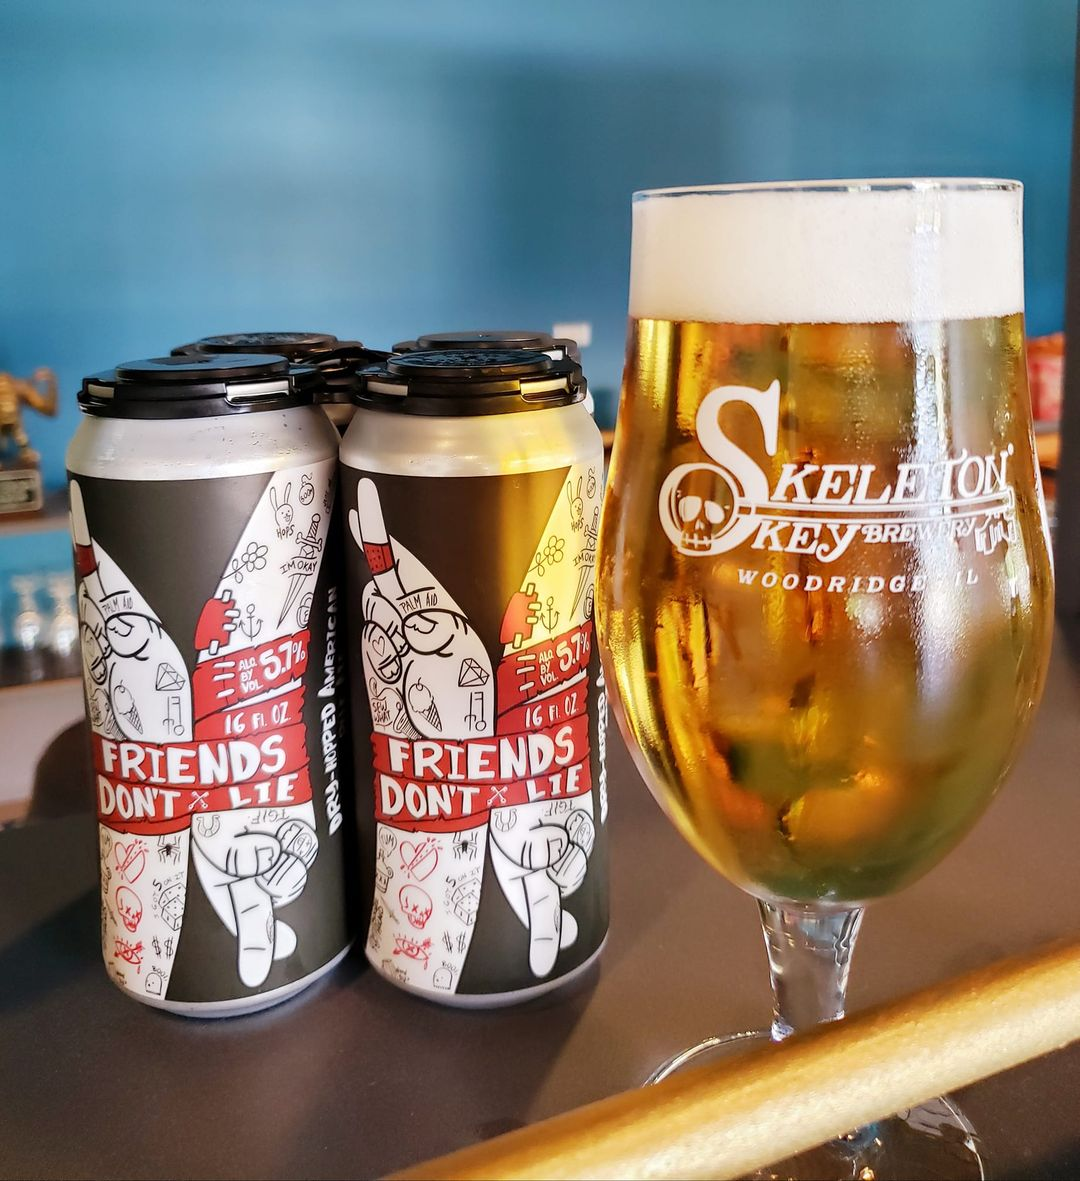 Cans and glass of Friends Dont' Lie by Skeleton Key Brewery